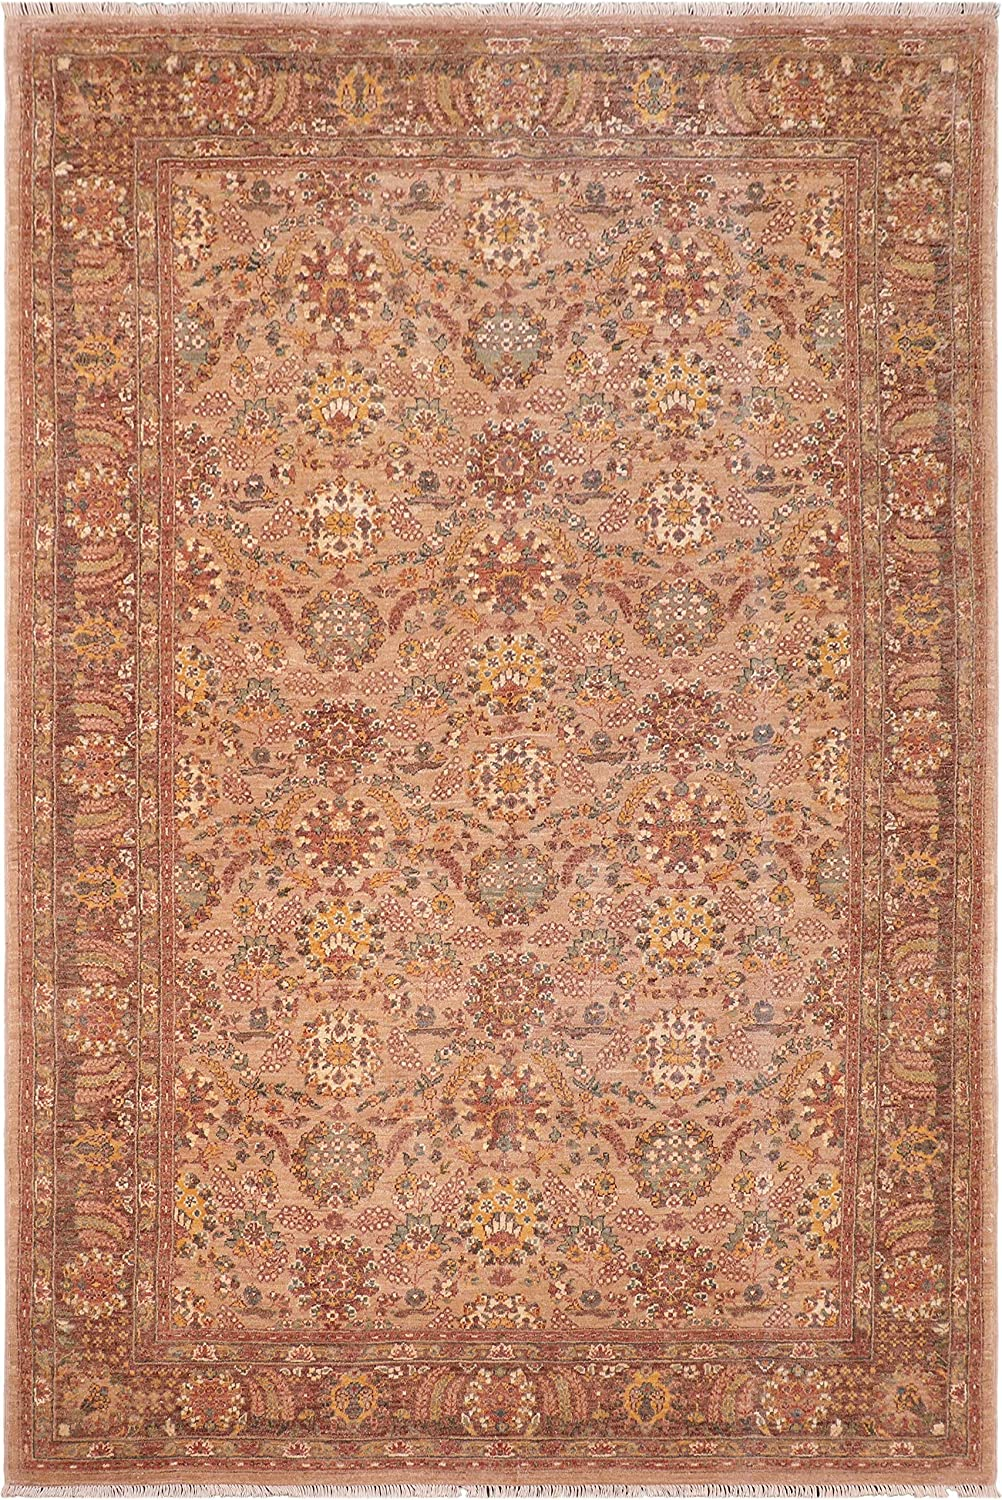 Shabby Chic Ziegler Leandra Tan Brown Wool 2021 spring and Austin Mall summer new x - 6'3'' Rug 9'4''